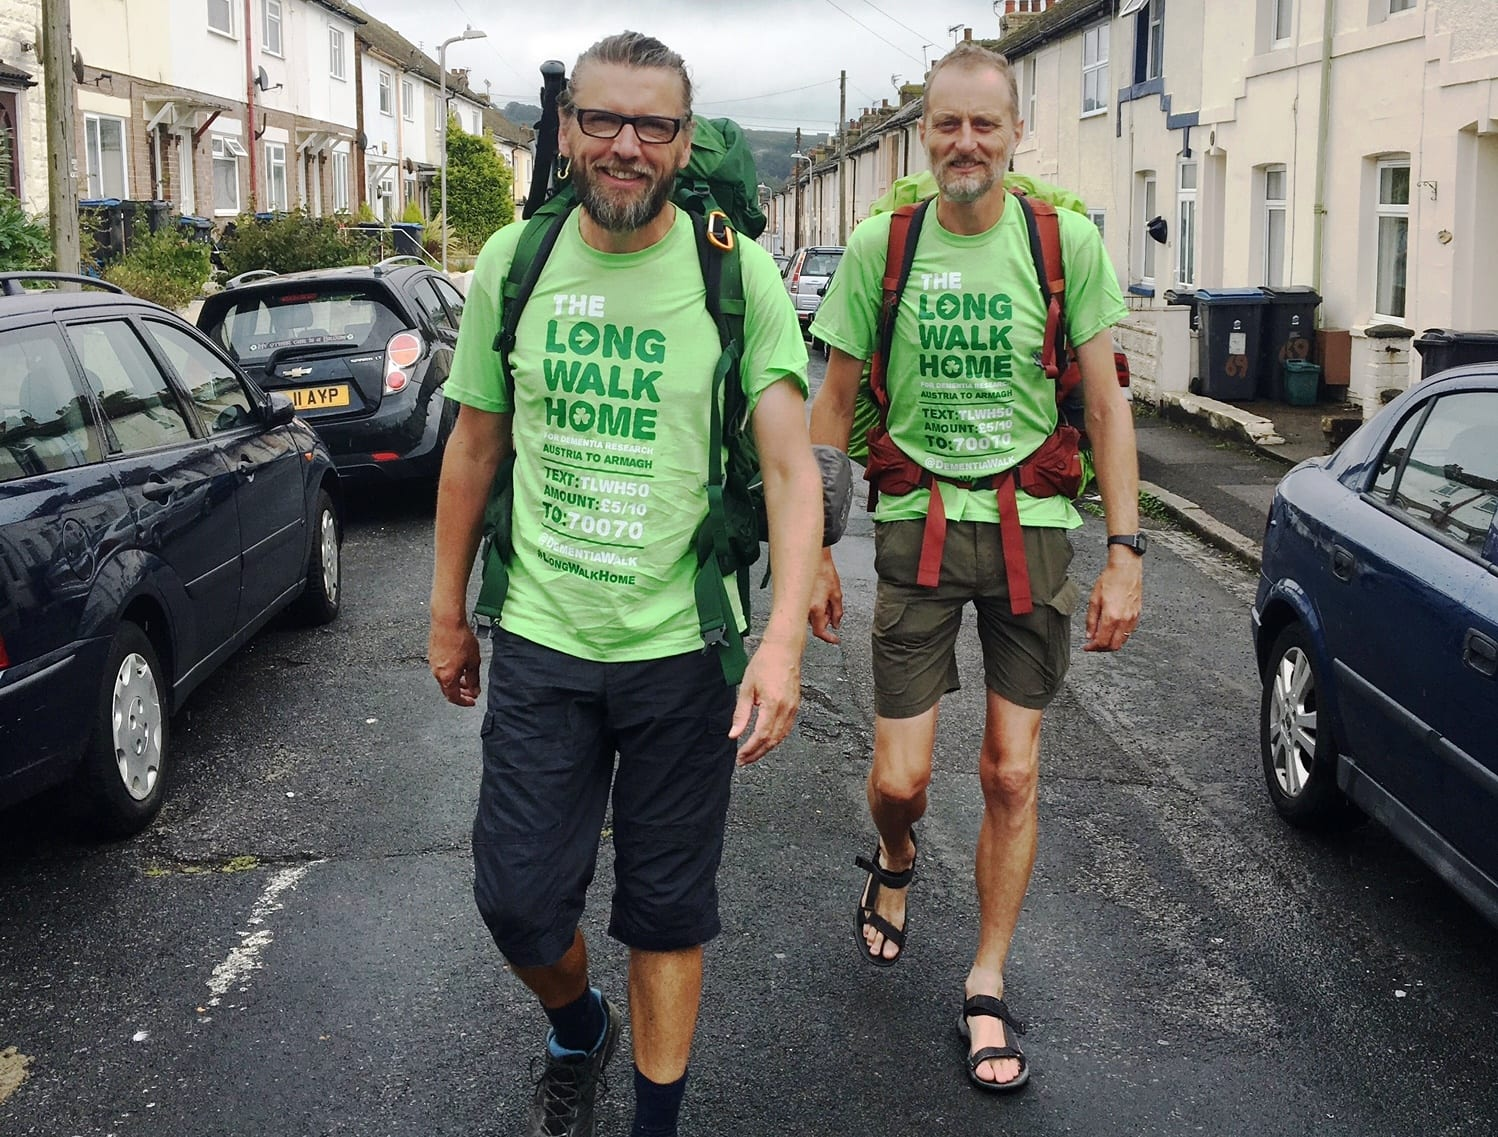 Leaving Dover for the GB leg of 'The Long Walk Home' for dementia research - 2,500km trek from Austria to Armagh. Eamonn Donnelly and Sepp Tieber-Kessler